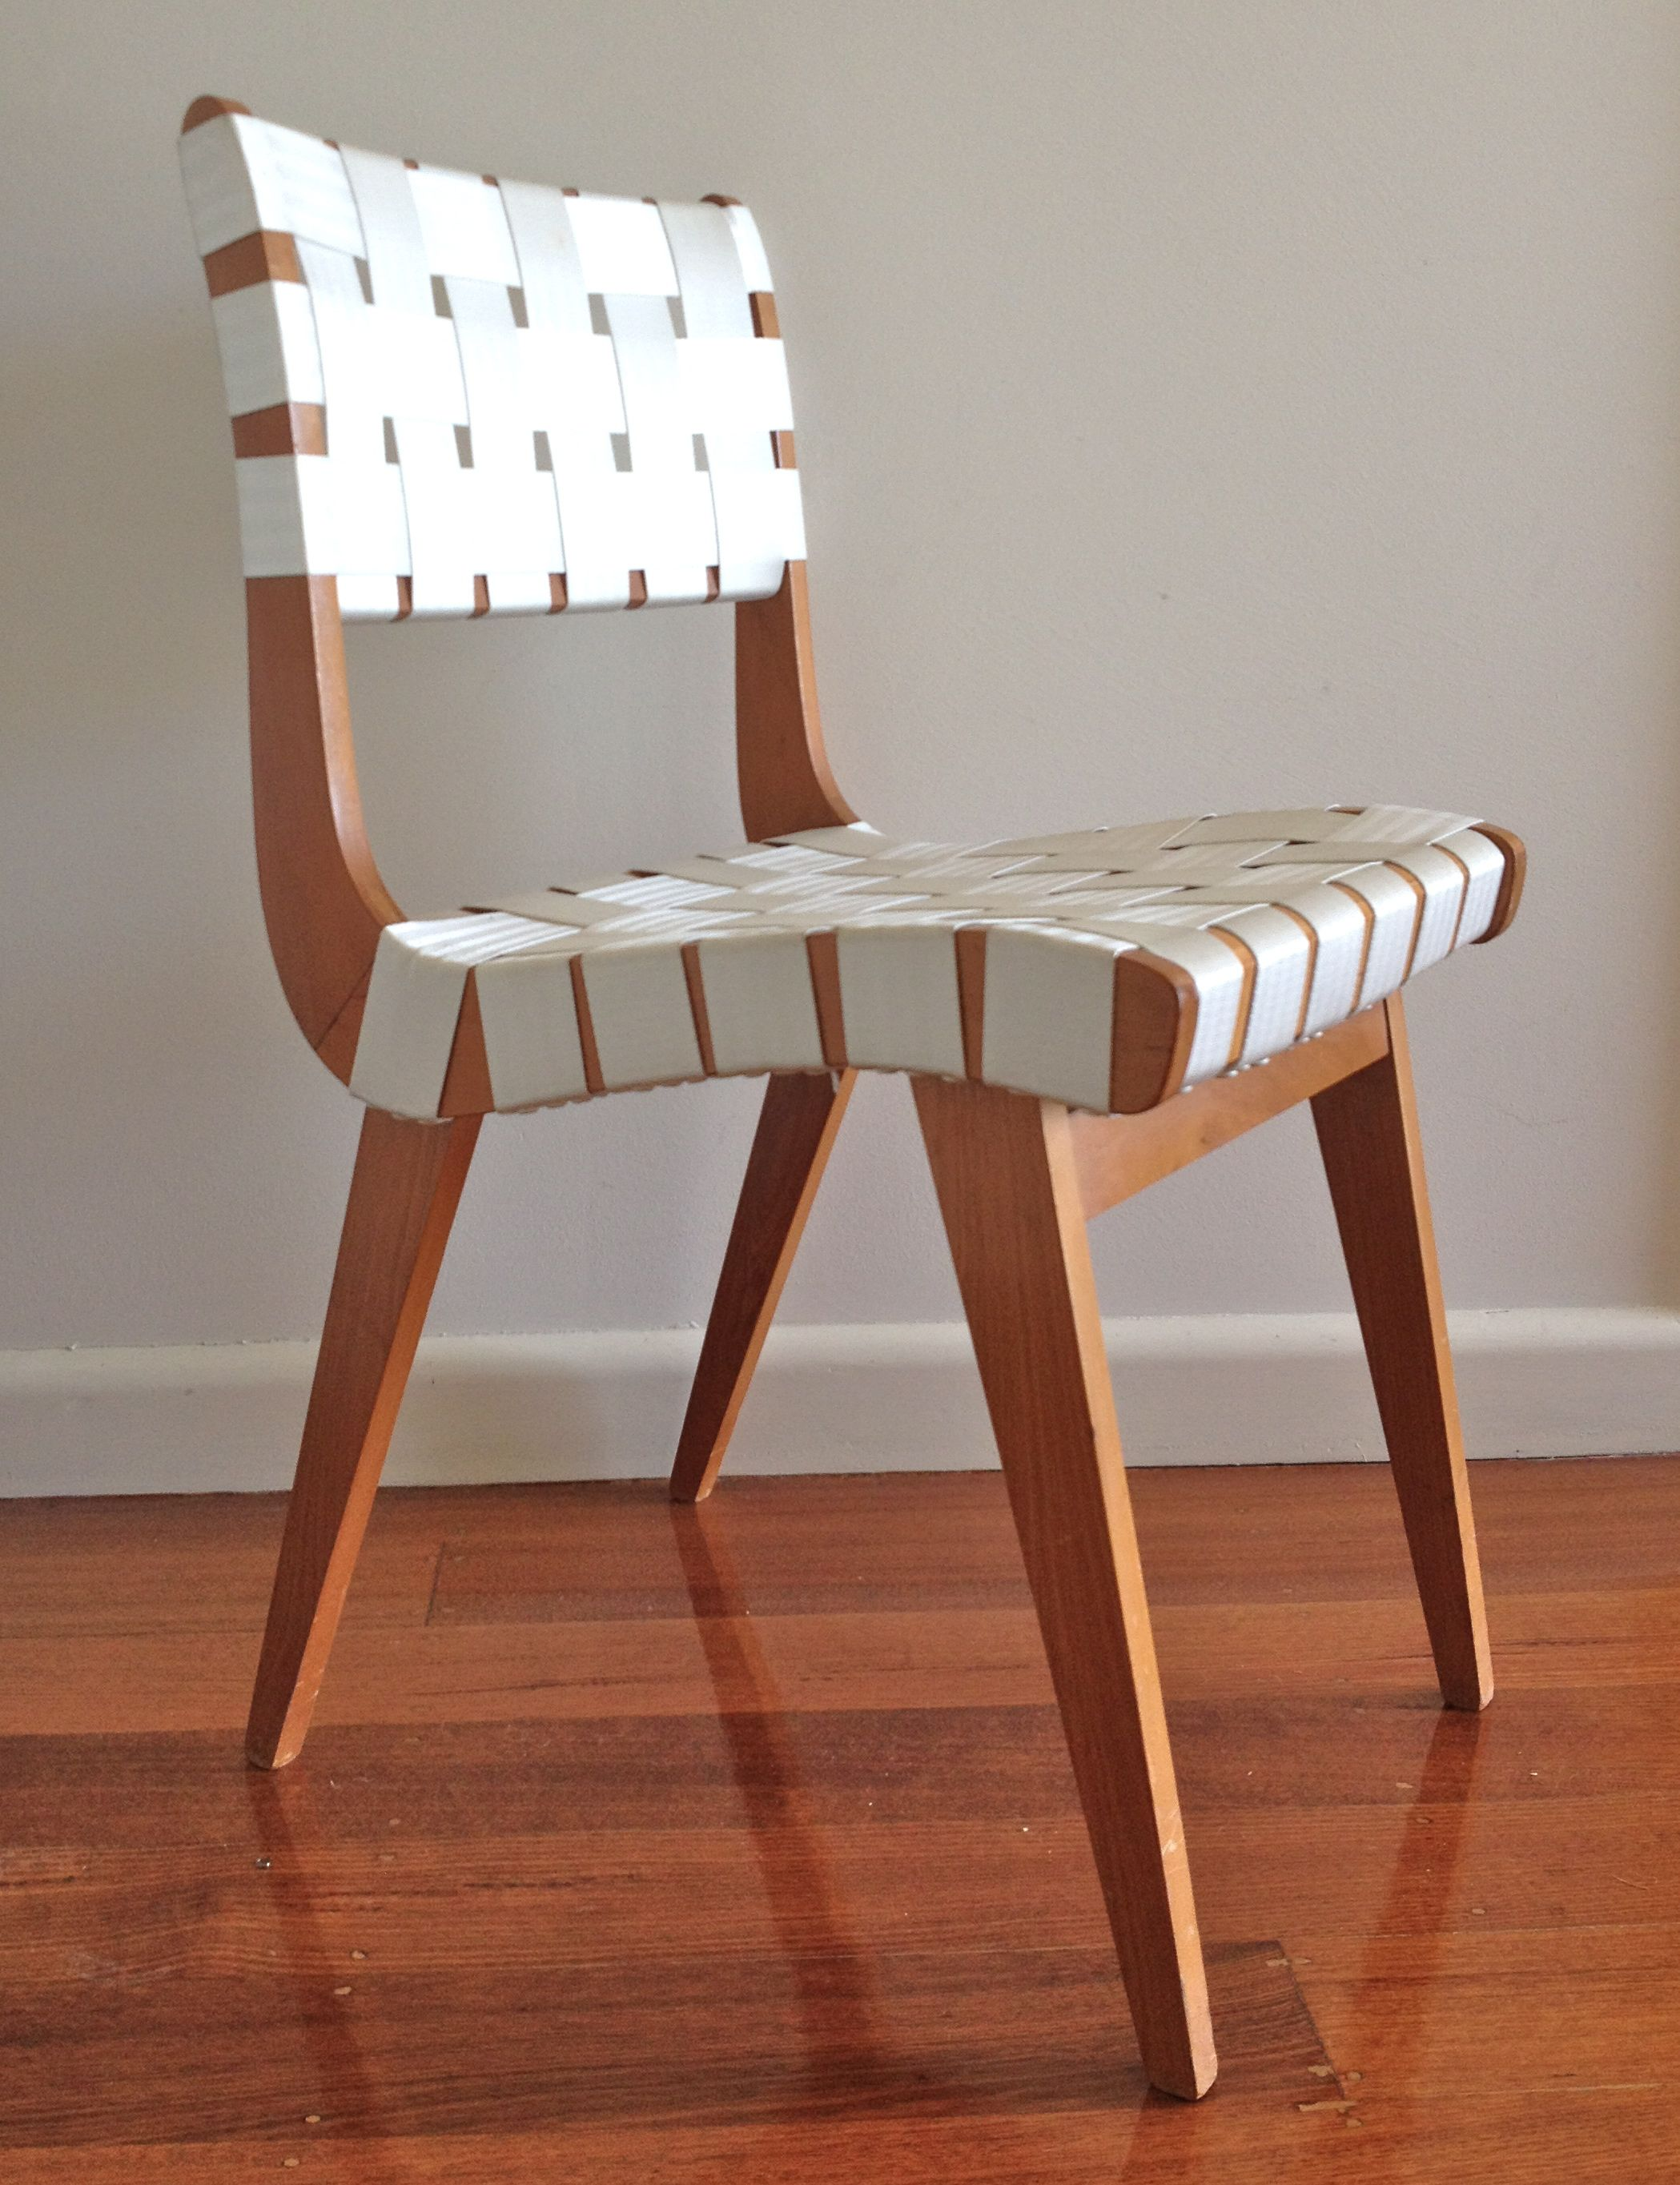 Snelling dining chair.. made by Functional Products Sydney